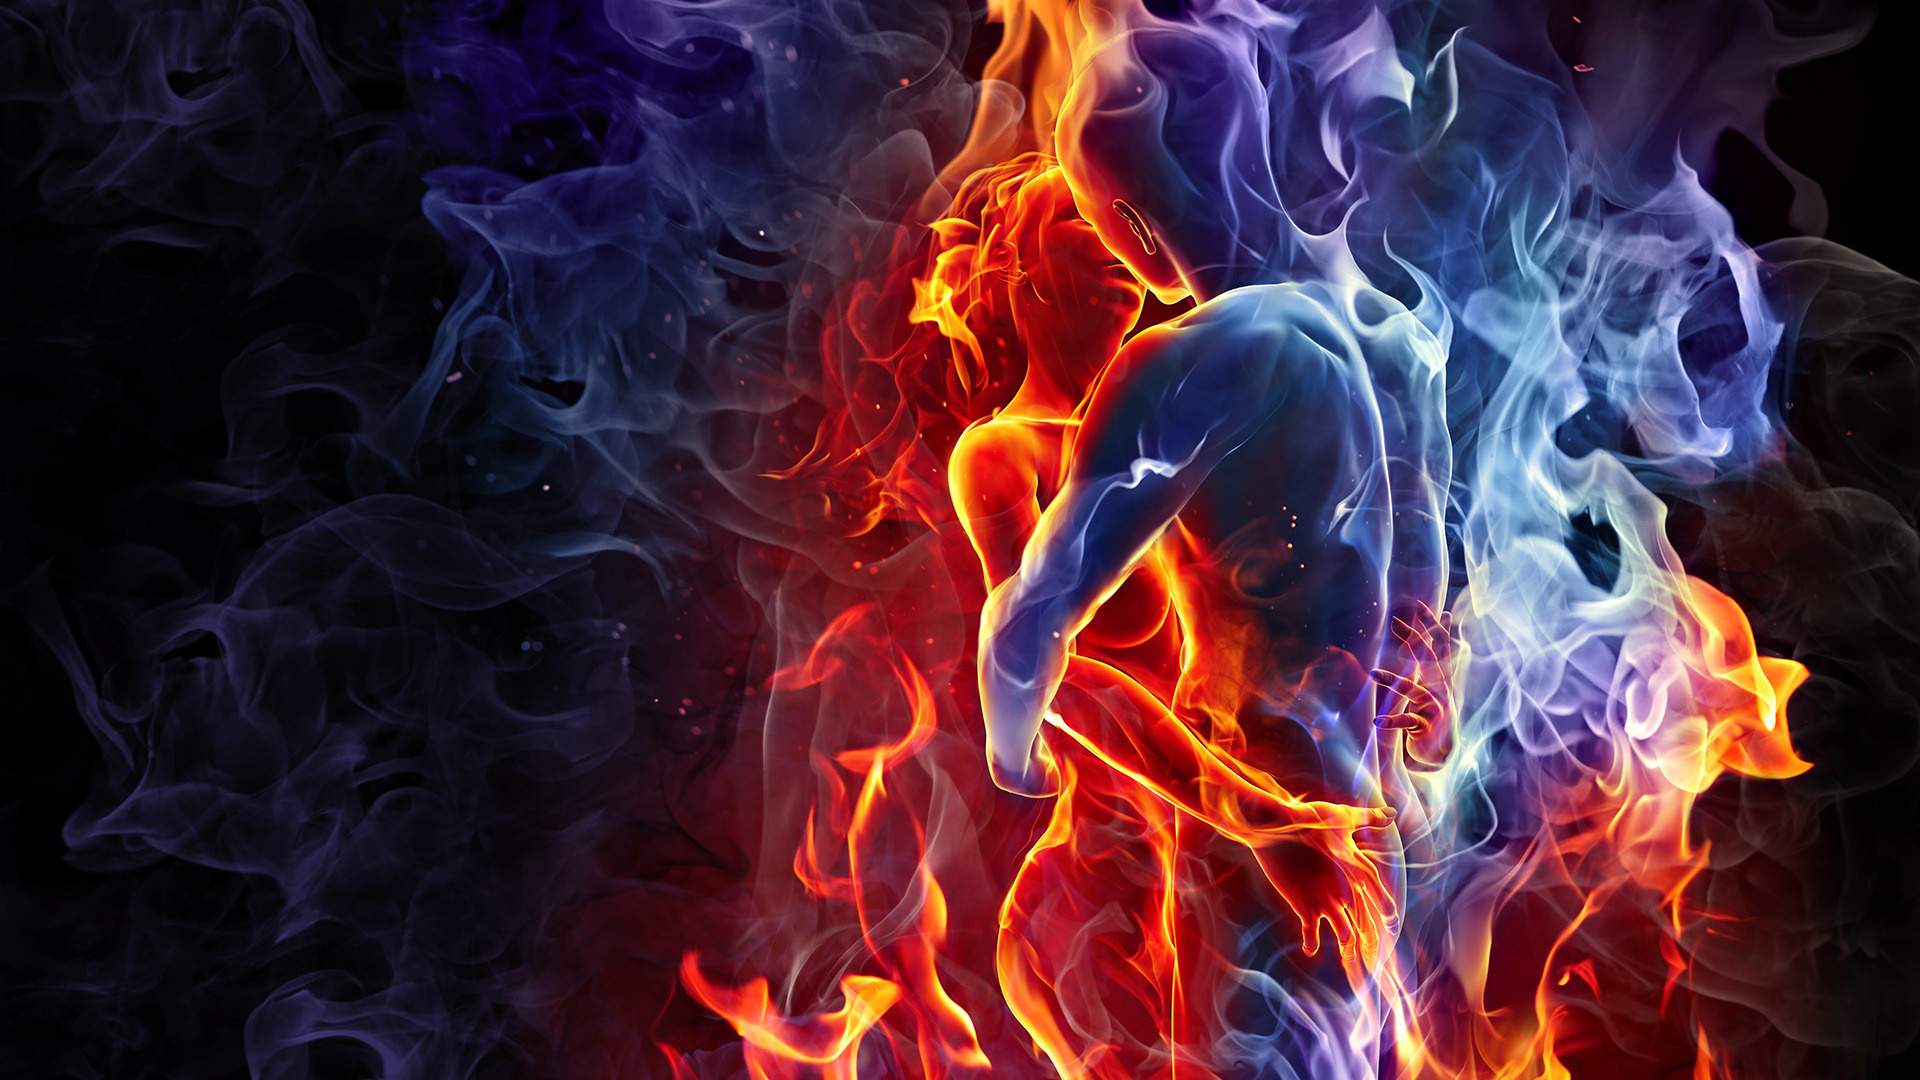 CGI-Fire-By-Mehmetyenice-wallpaper-wp3403818